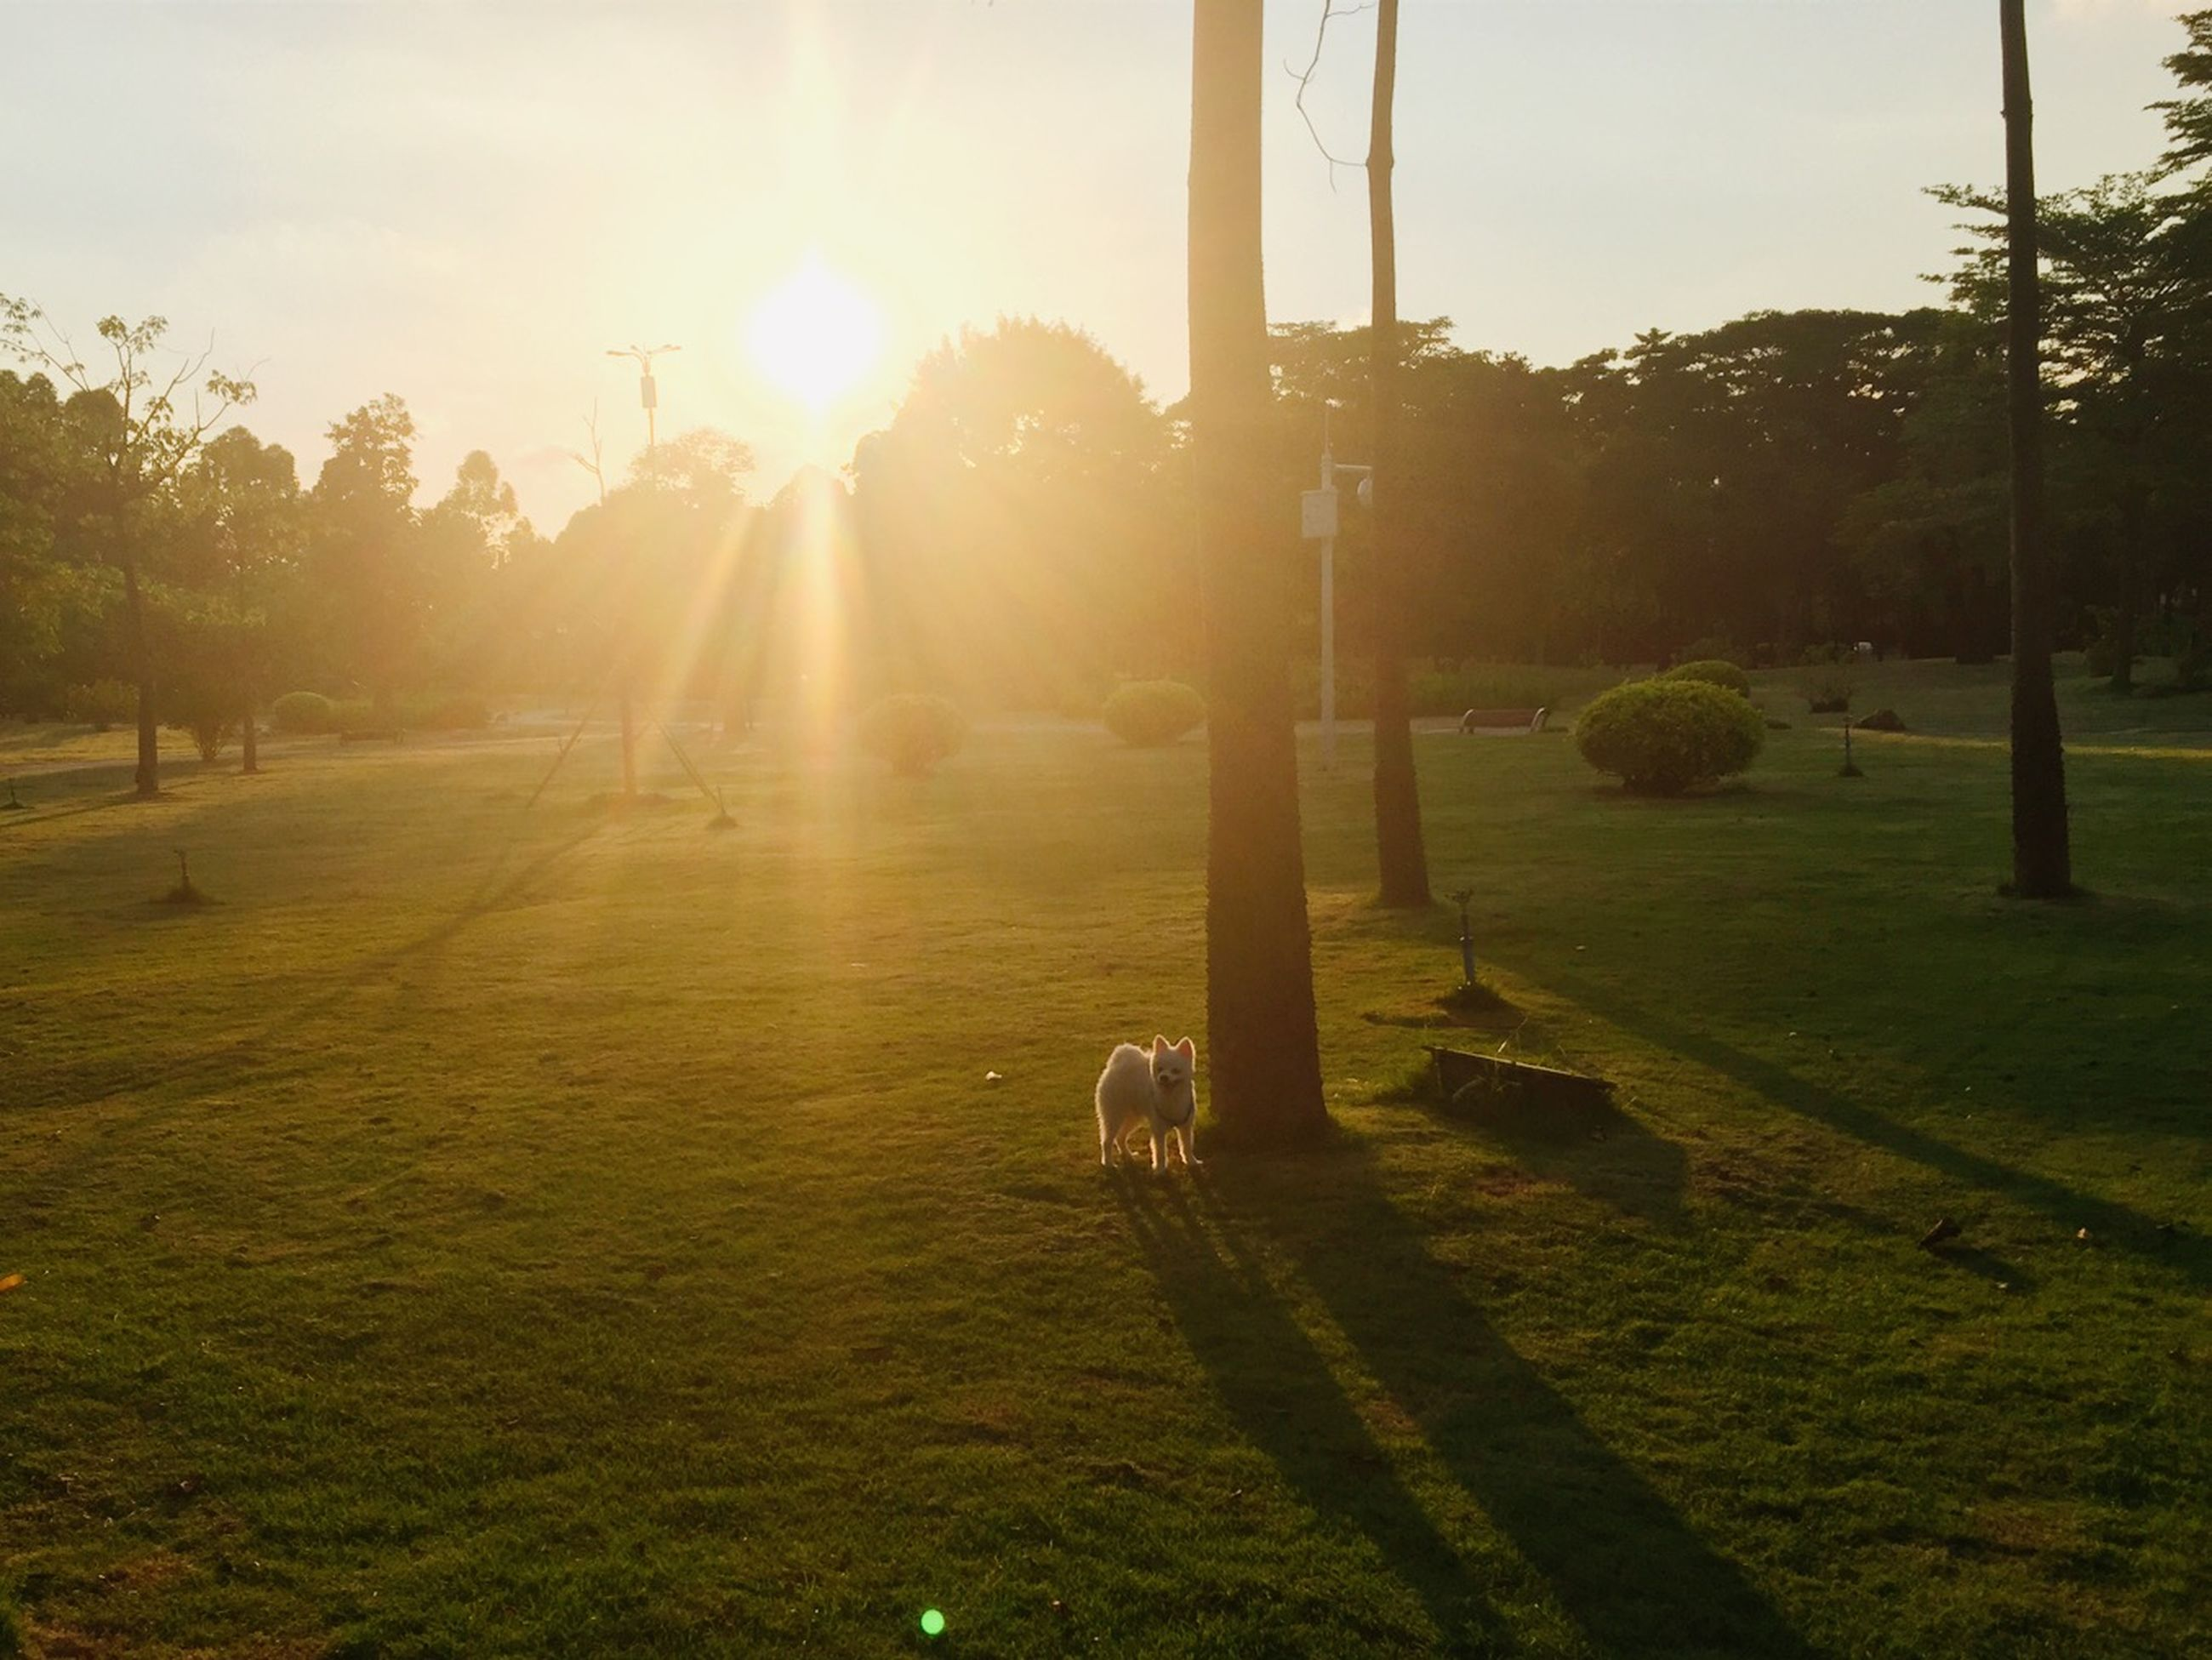 sun, grass, sunlight, tree, sunbeam, lens flare, field, grassy, park - man made space, tranquility, sunset, landscape, nature, tranquil scene, sunny, growth, shadow, sky, lawn, outdoors